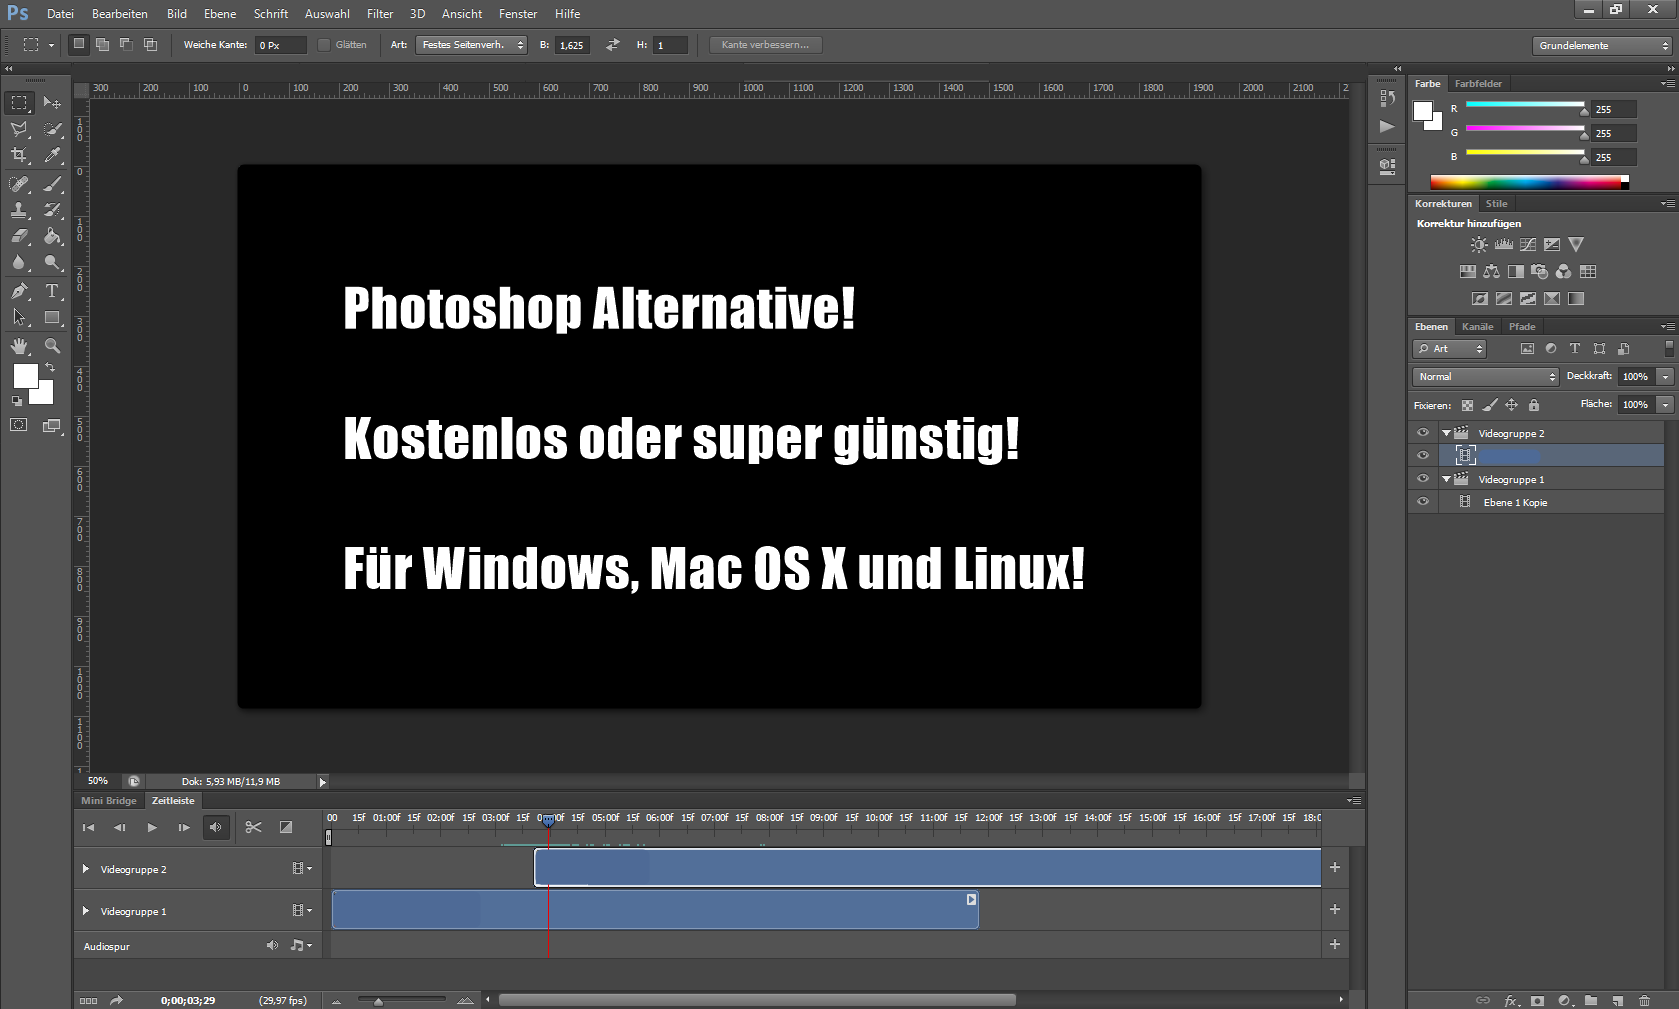 Photoshop Alternative kostenlos